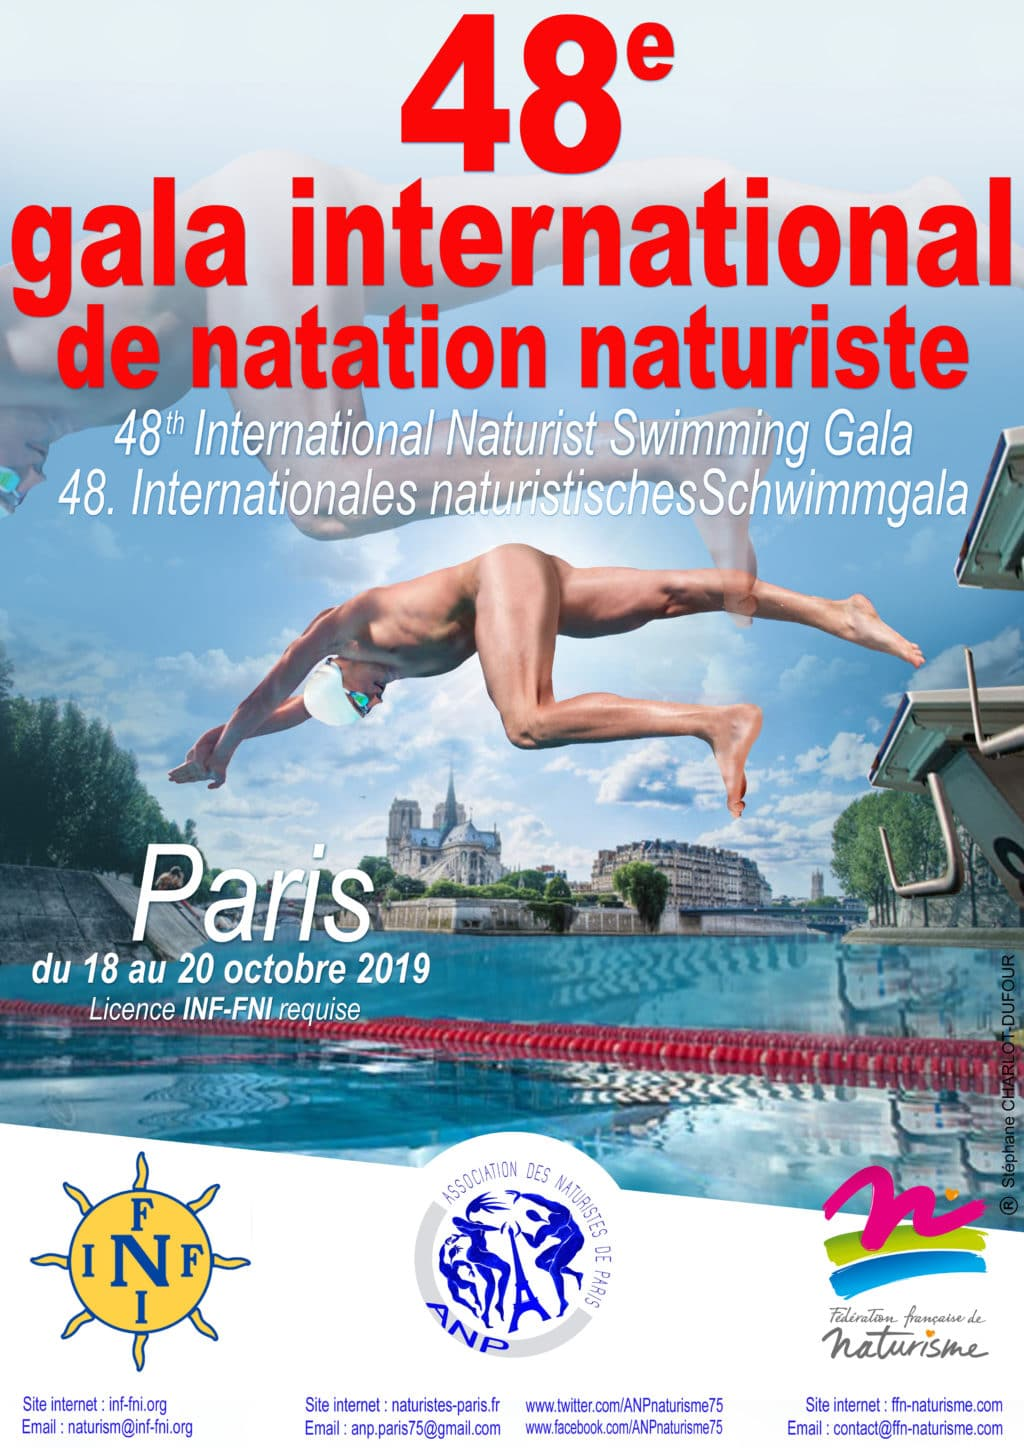 Gala international de natation naturiste 2019